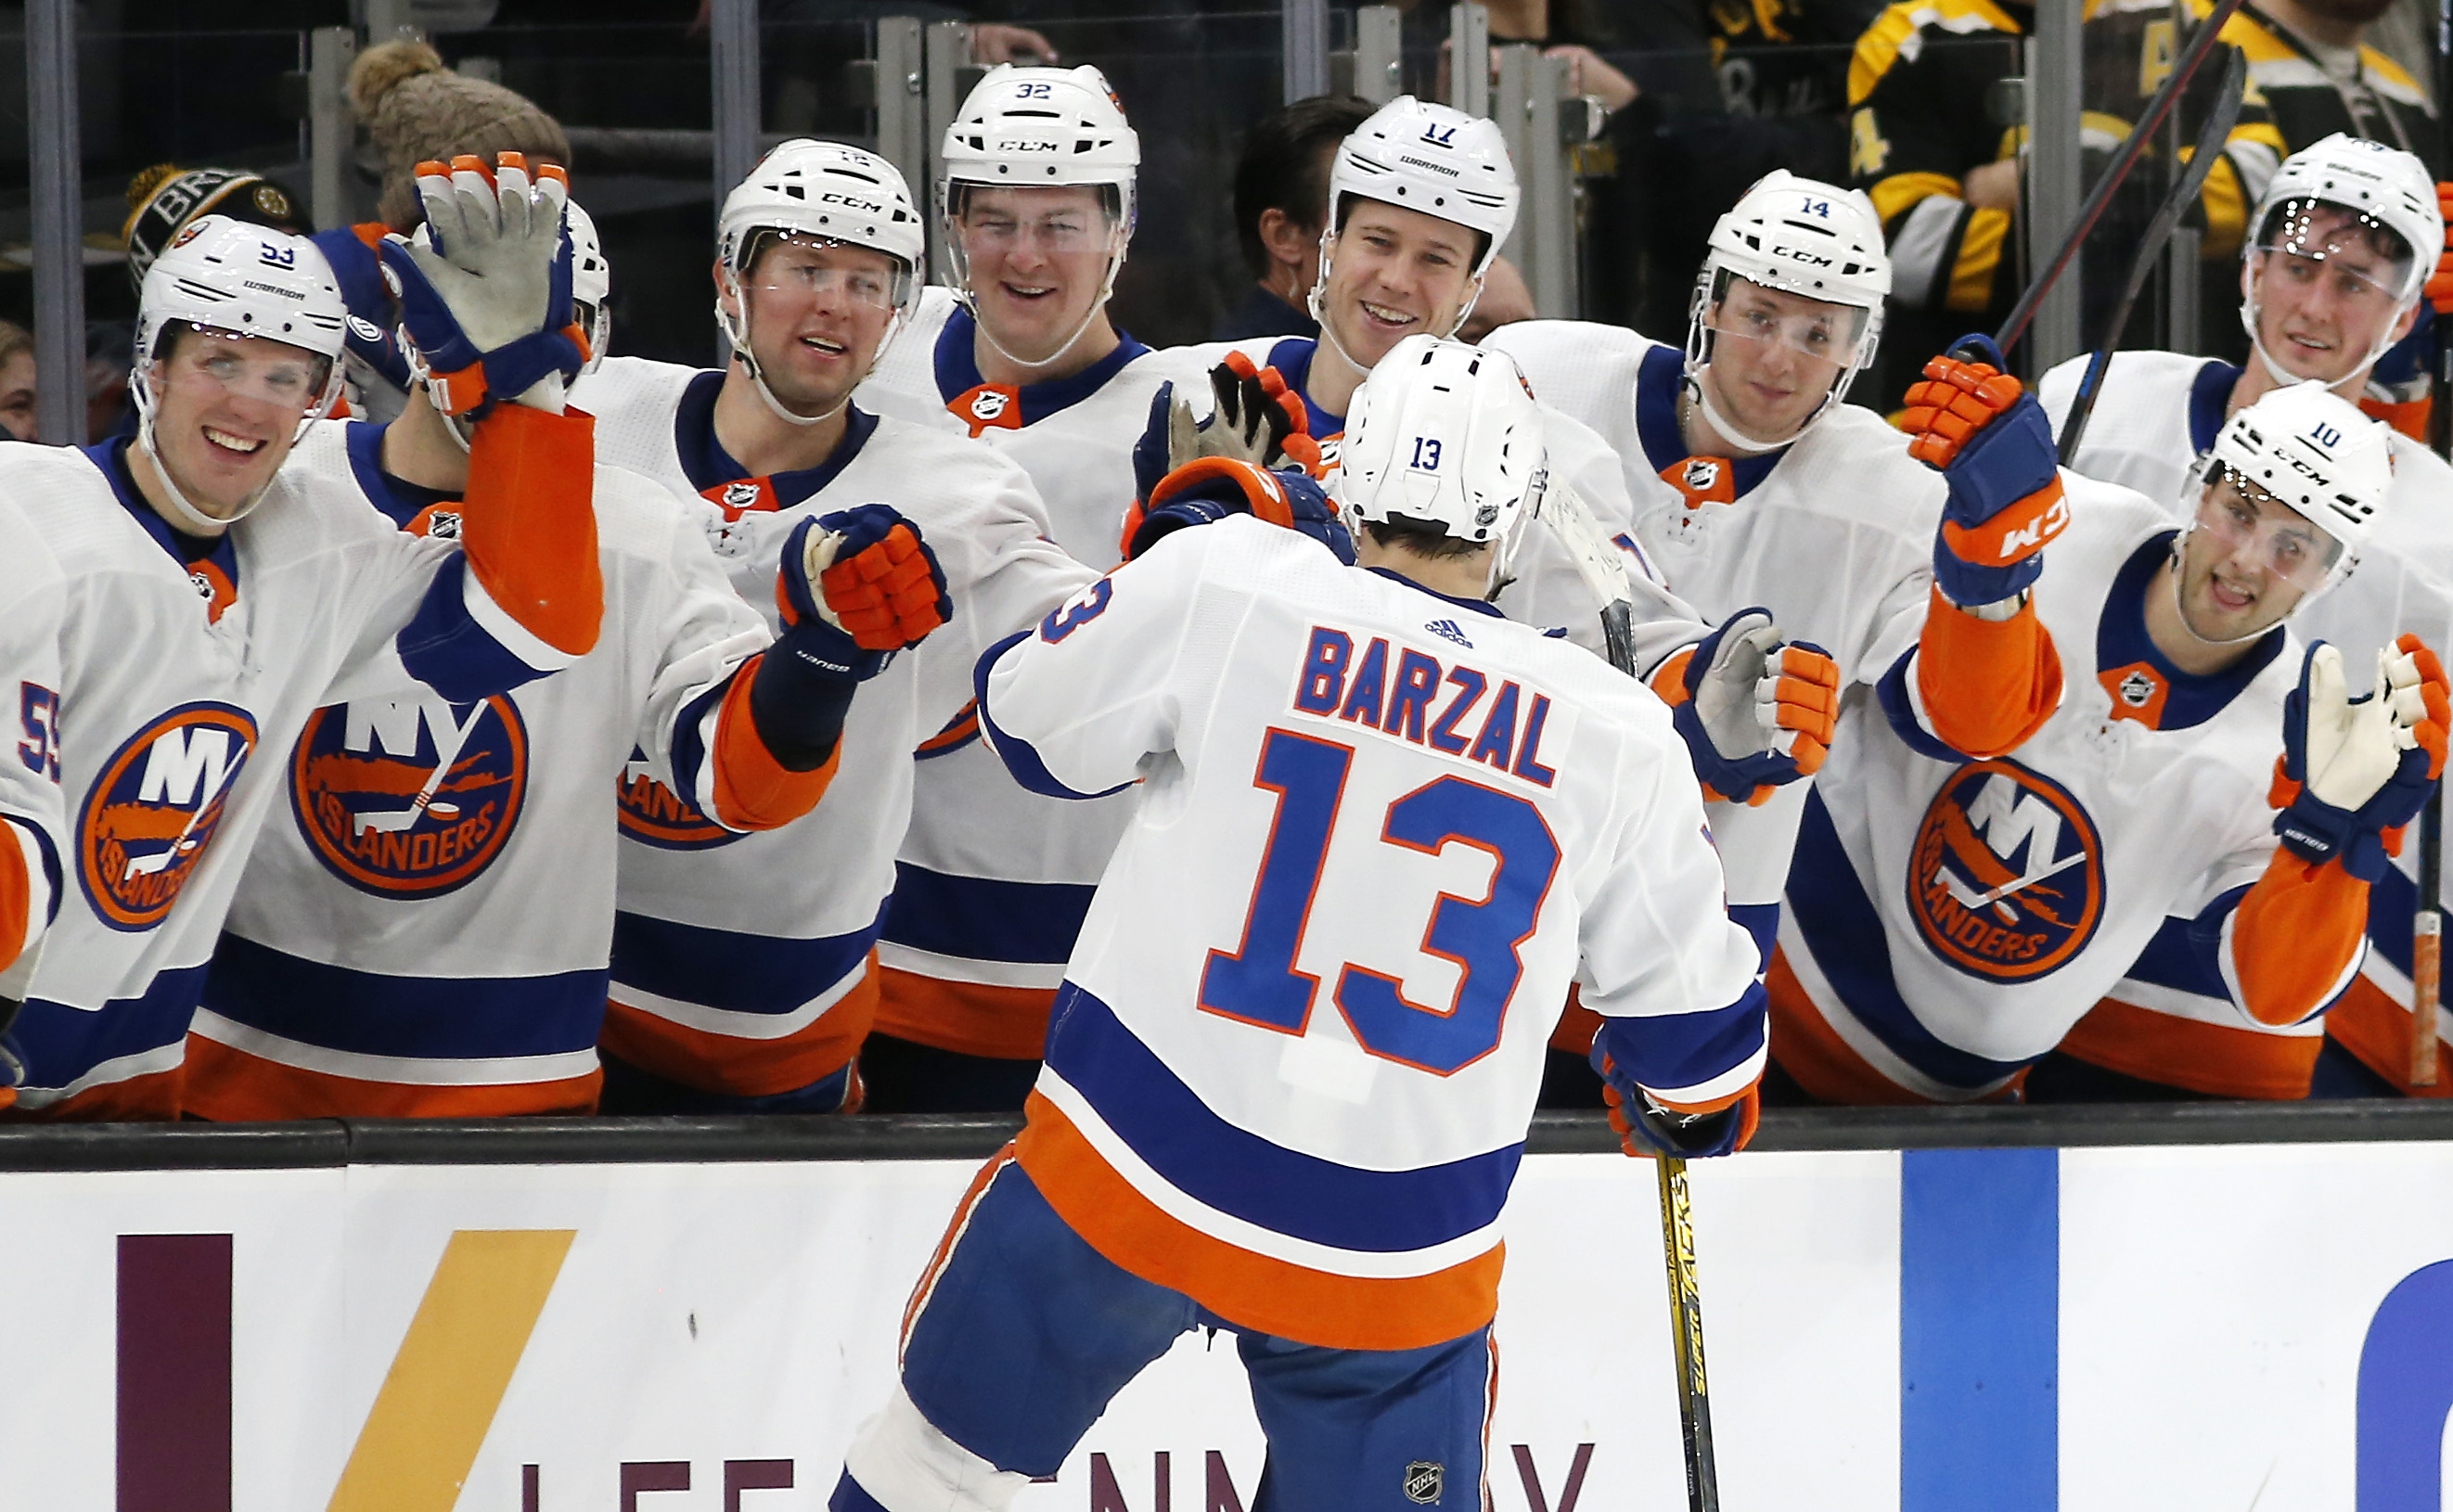 Dec 19, 2019; Boston, MA, USA; New York Islanders center Mathew Barzal (13) celebrates with teammates after scoring a goal against the Boston Bruins during a shootout at TD Garden. Mandatory Credit: Winslow Townson-USA TODAY Sports